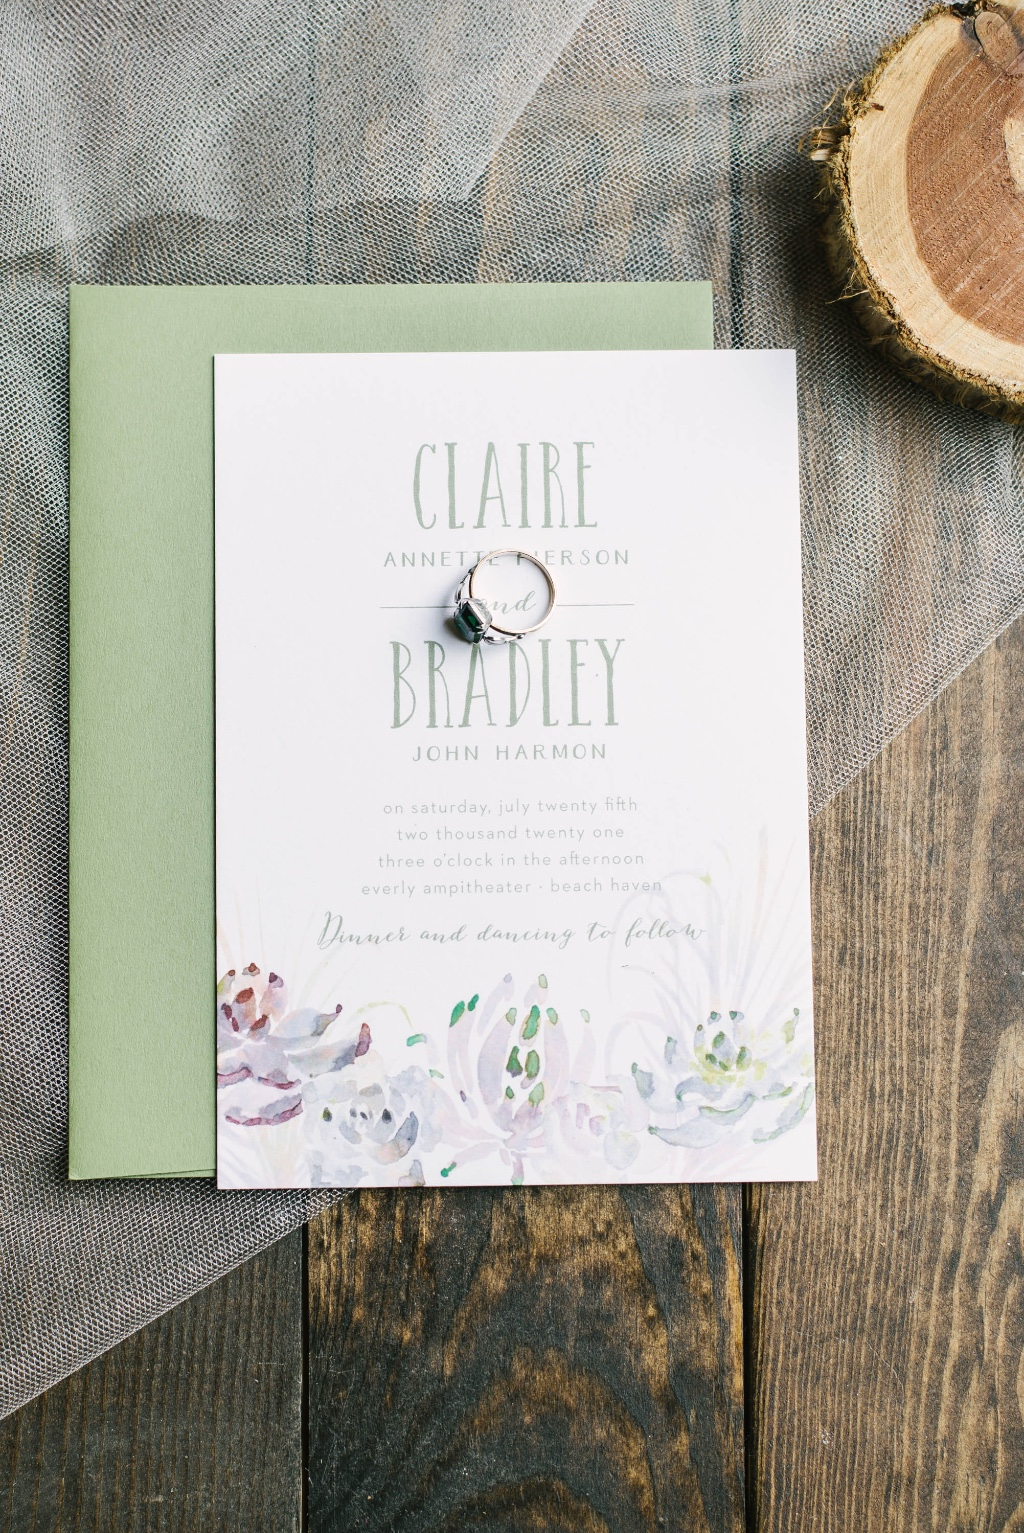 Desert vibes wedding invitations are a fresh and fun take on a summertime wedding invitation style!